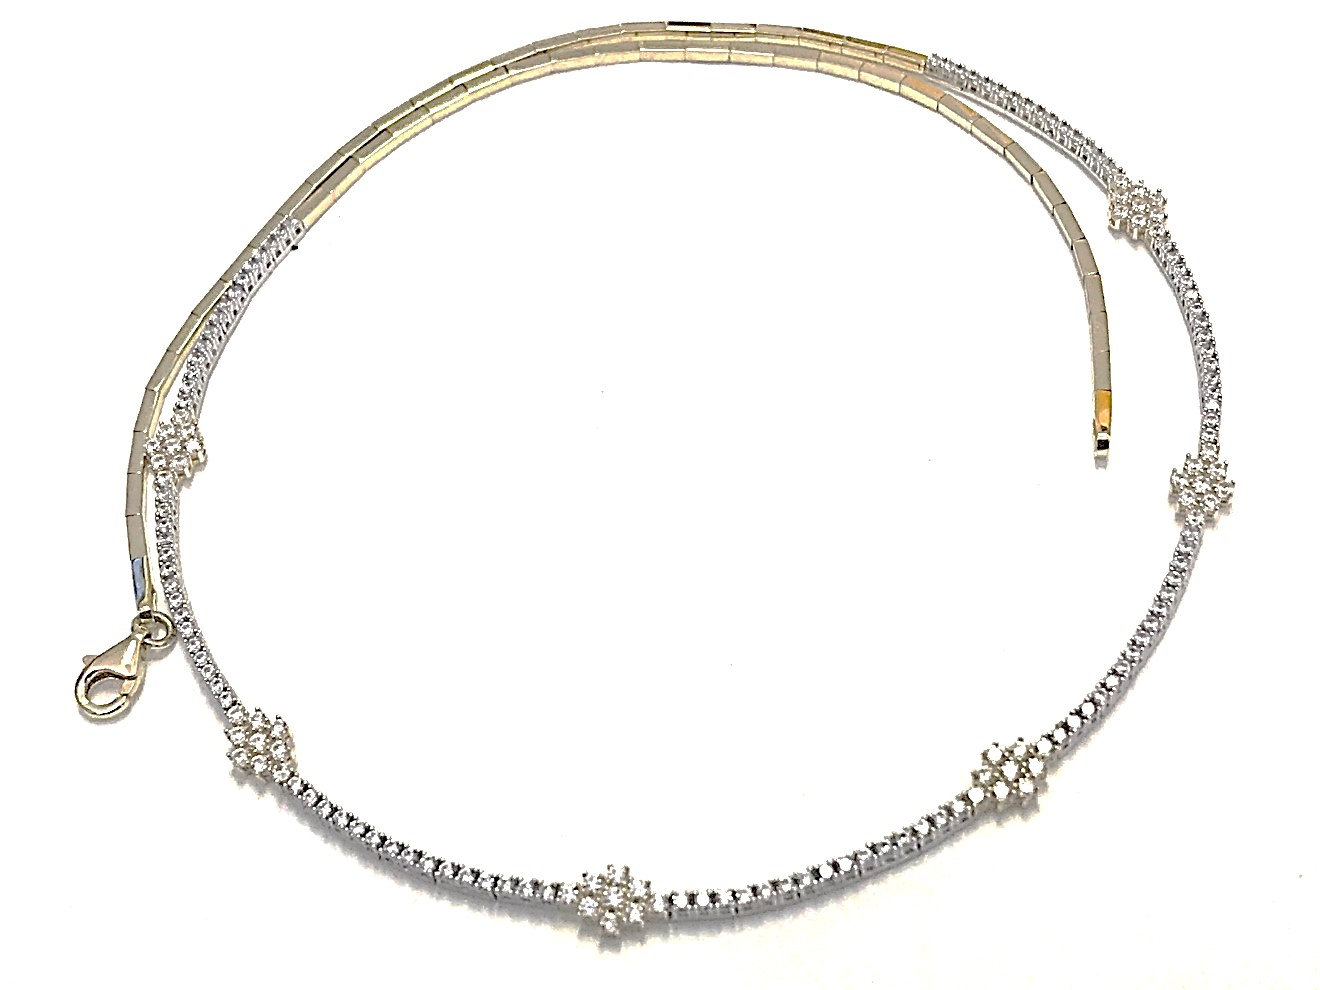 Necklace for woman - 10K 2 tone gold & Cubic zirconia